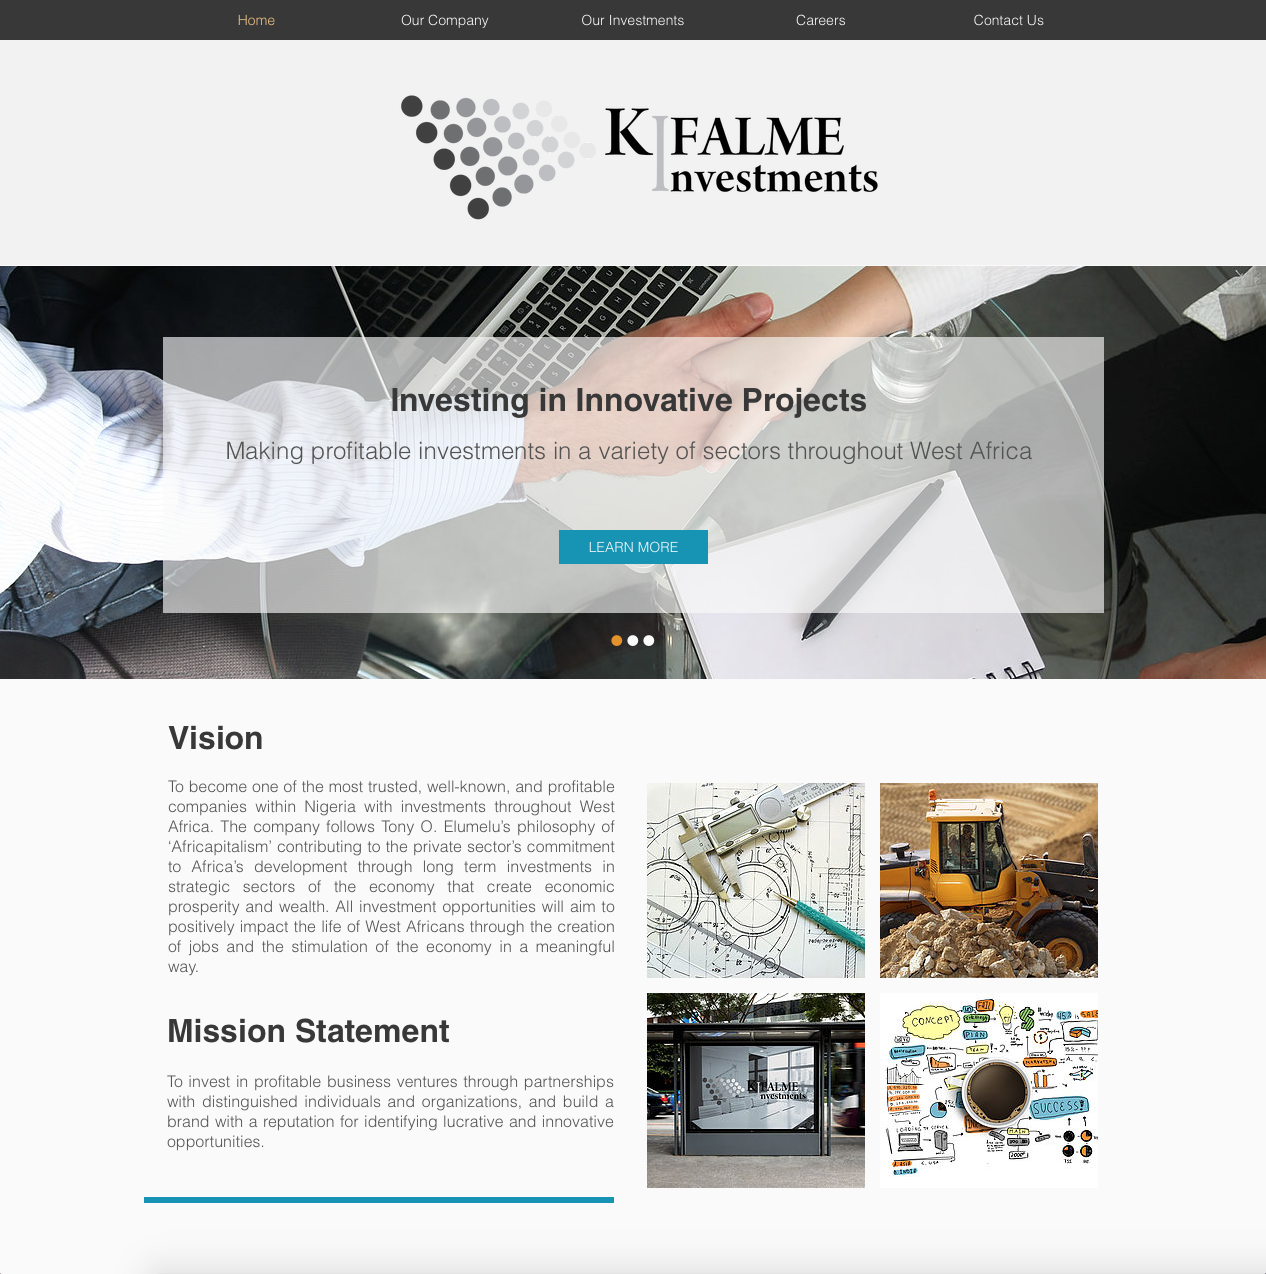 Kifalme Investments